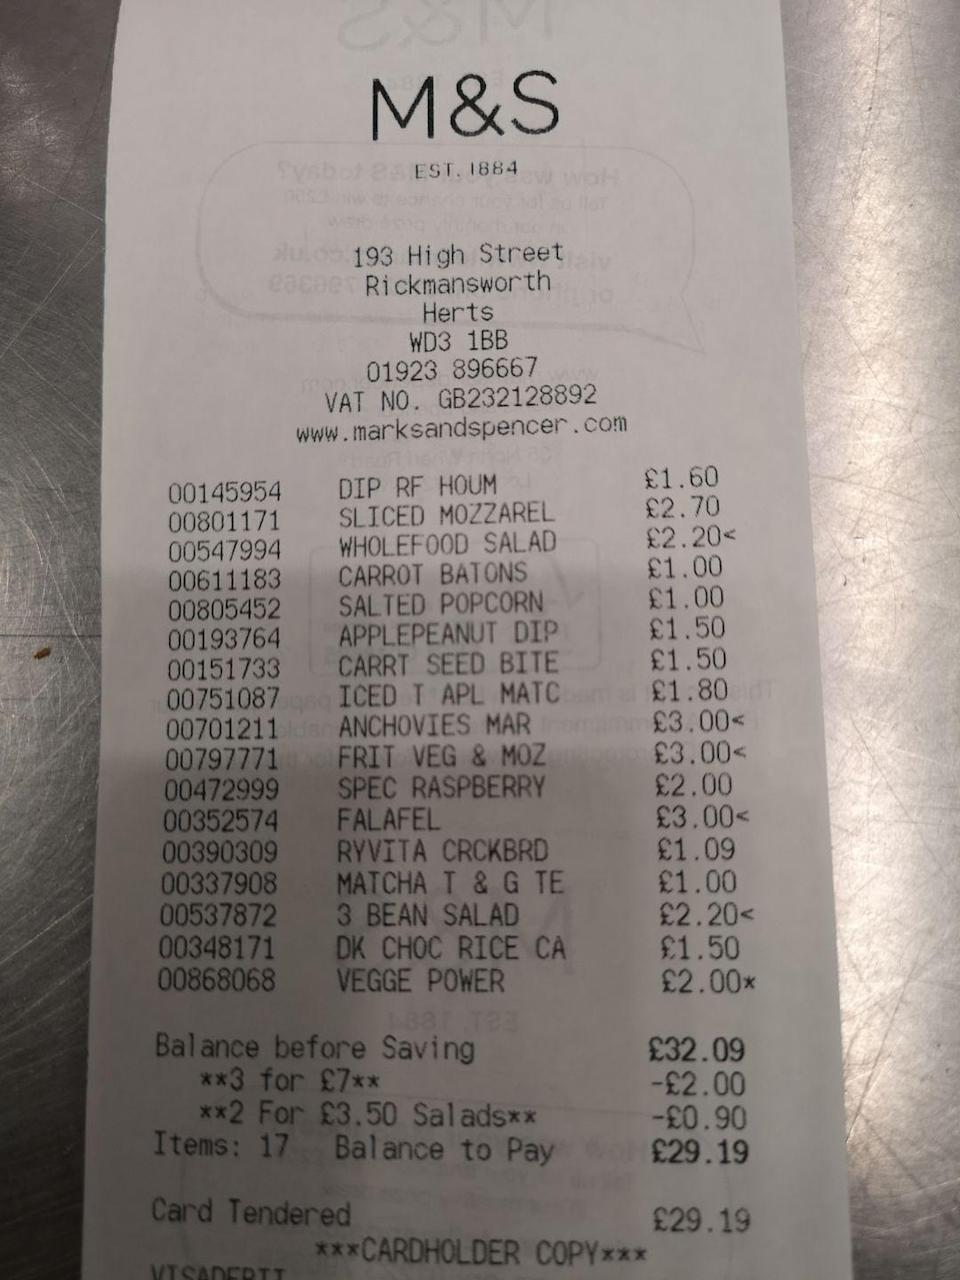 """<p>Hope's haul came in at £29.19. 81p under budget—not bad for a picnic that would serve two, full of micronutrient-dense foods and snacks ideal for enjoying al freso on a summers day.</p><p>Ready to shop? Head in store or to the <a href=""""https://www.marksandspencer.com/l/food-to-order/picnic-food-ideas"""" rel=""""nofollow noopener"""" target=""""_blank"""" data-ylk=""""slk:Marks and Spencer website"""" class=""""link rapid-noclick-resp"""">Marks and Spencer website</a> to place your order, or read what Hope would buy from <a href=""""https://www.womenshealthmag.com/uk/food/healthy-eating/g26783322/healthy-sainsburys-food/"""" rel=""""nofollow noopener"""" target=""""_blank"""" data-ylk=""""slk:Sainsbury's"""" class=""""link rapid-noclick-resp"""">Sainsbury's</a>, <a href=""""https://www.womenshealthmag.com/uk/food/healthy-eating/g25889100/healthy-asda-food/"""" rel=""""nofollow noopener"""" target=""""_blank"""" data-ylk=""""slk:Asda"""" class=""""link rapid-noclick-resp"""">Asda</a> and <a href=""""https://www.womenshealthmag.com/uk/food/weight-loss/a709038/healthiest-foods-to-buy-at-lidl/"""" rel=""""nofollow noopener"""" target=""""_blank"""" data-ylk=""""slk:Lidl"""" class=""""link rapid-noclick-resp"""">Lidl</a>. </p><p>You're welcome. </p>"""